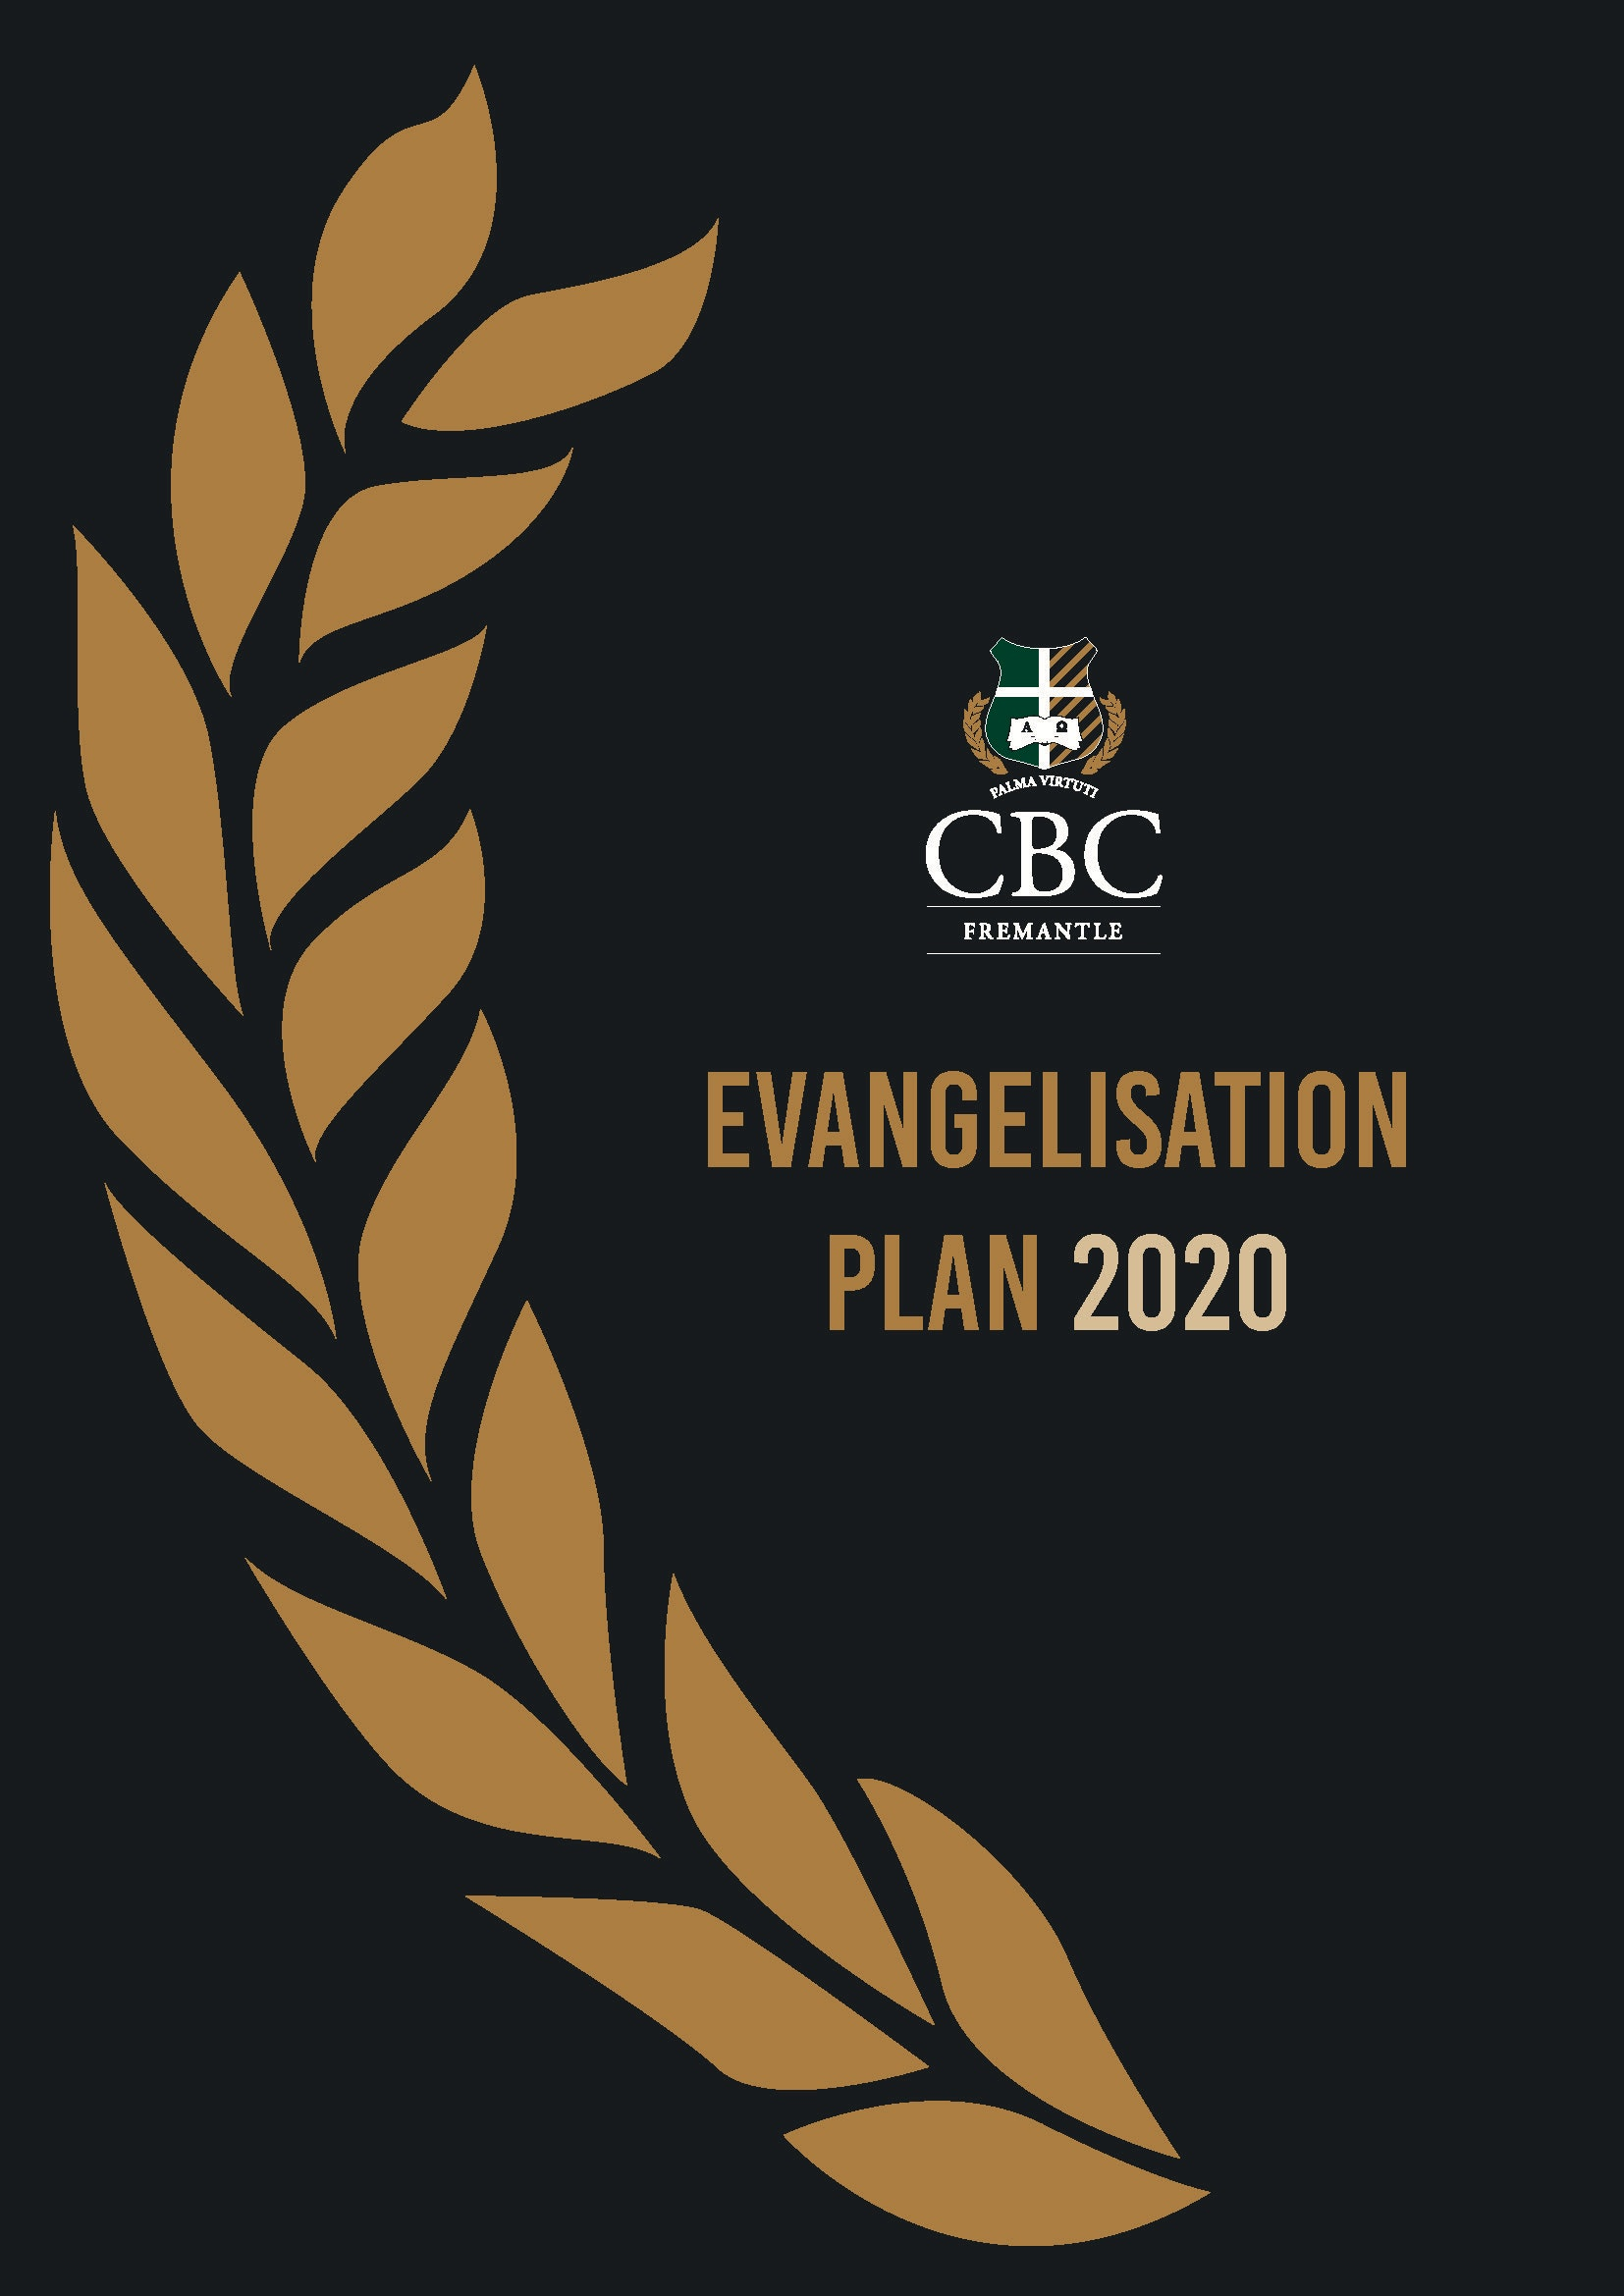 pages-from-cbc-evangelisation-plan-2020.jpg